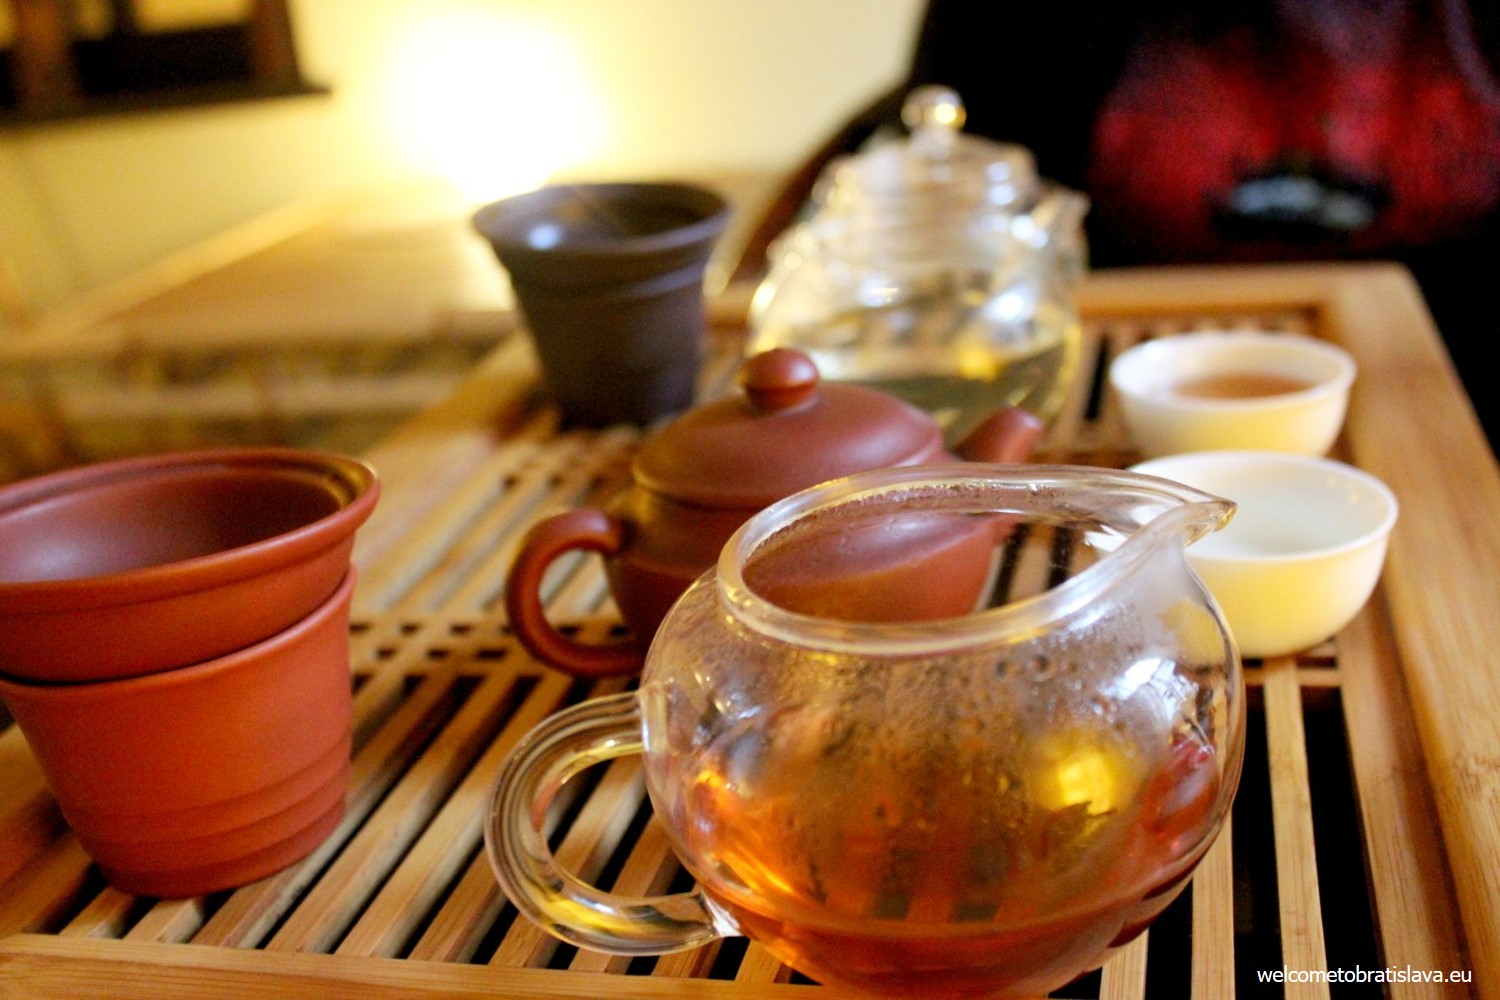 Tea is baked over the wooden embers which gives it a typical aroma and a kind of a burnt taste.